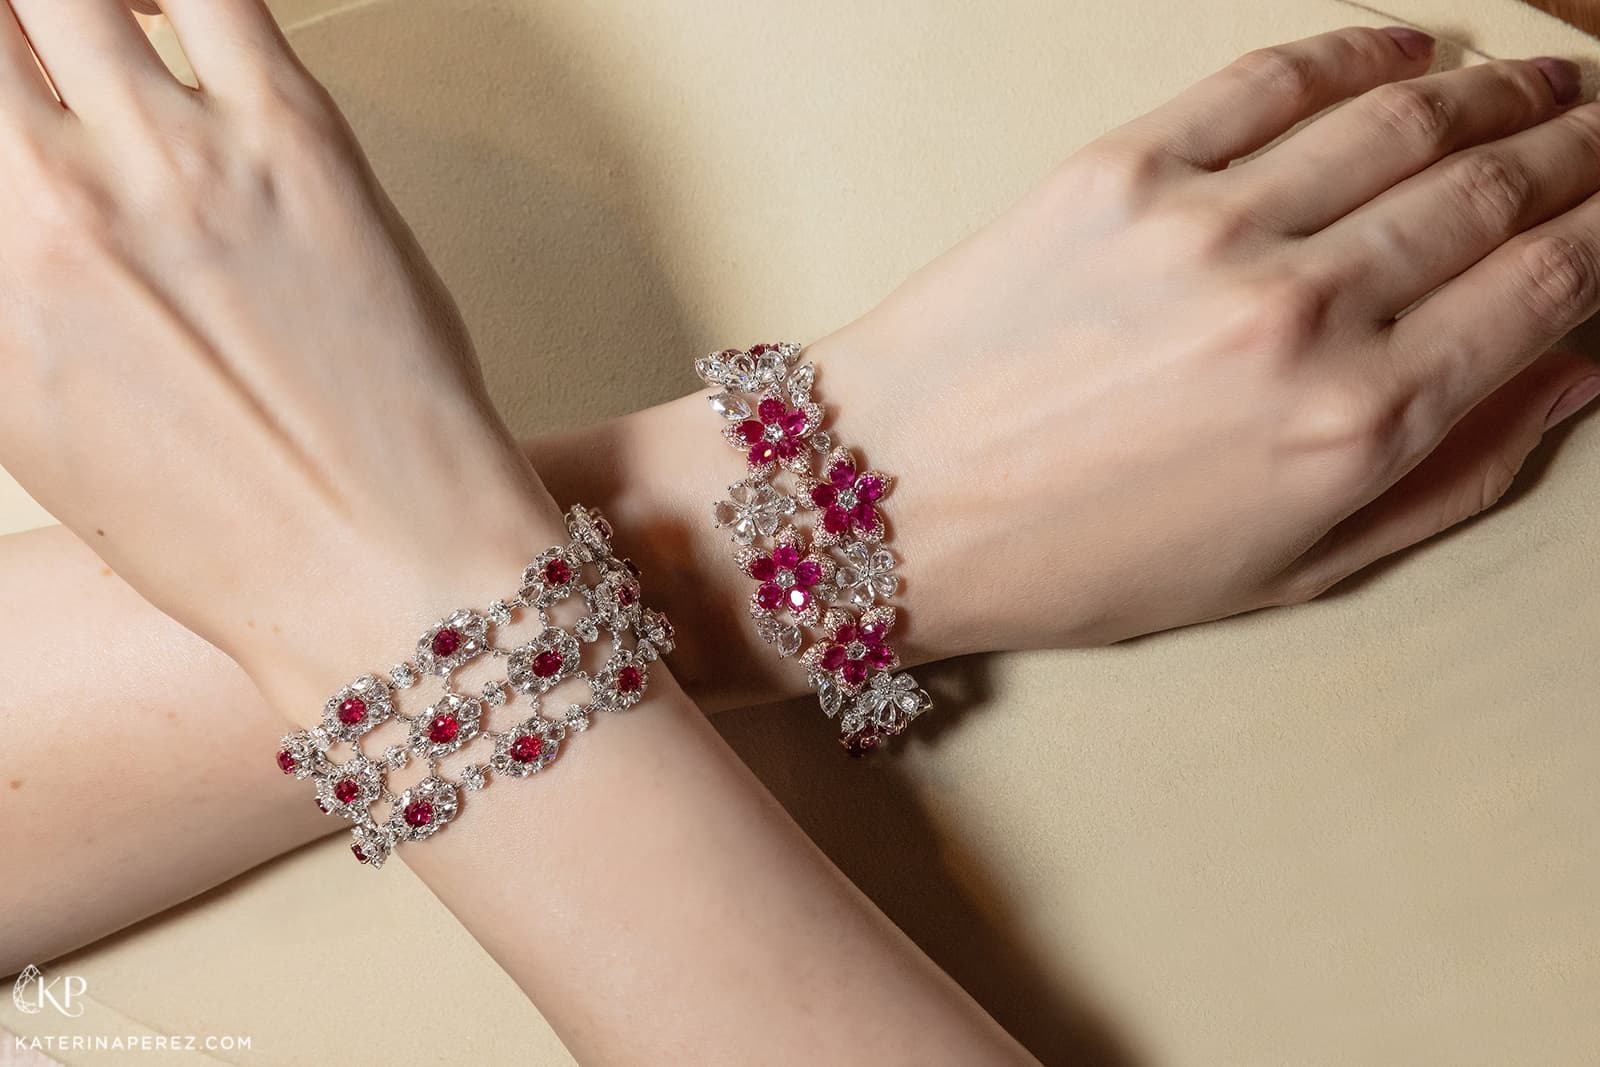 Novel Fine Jewelry bracelets with rubies and diamonds in white gold